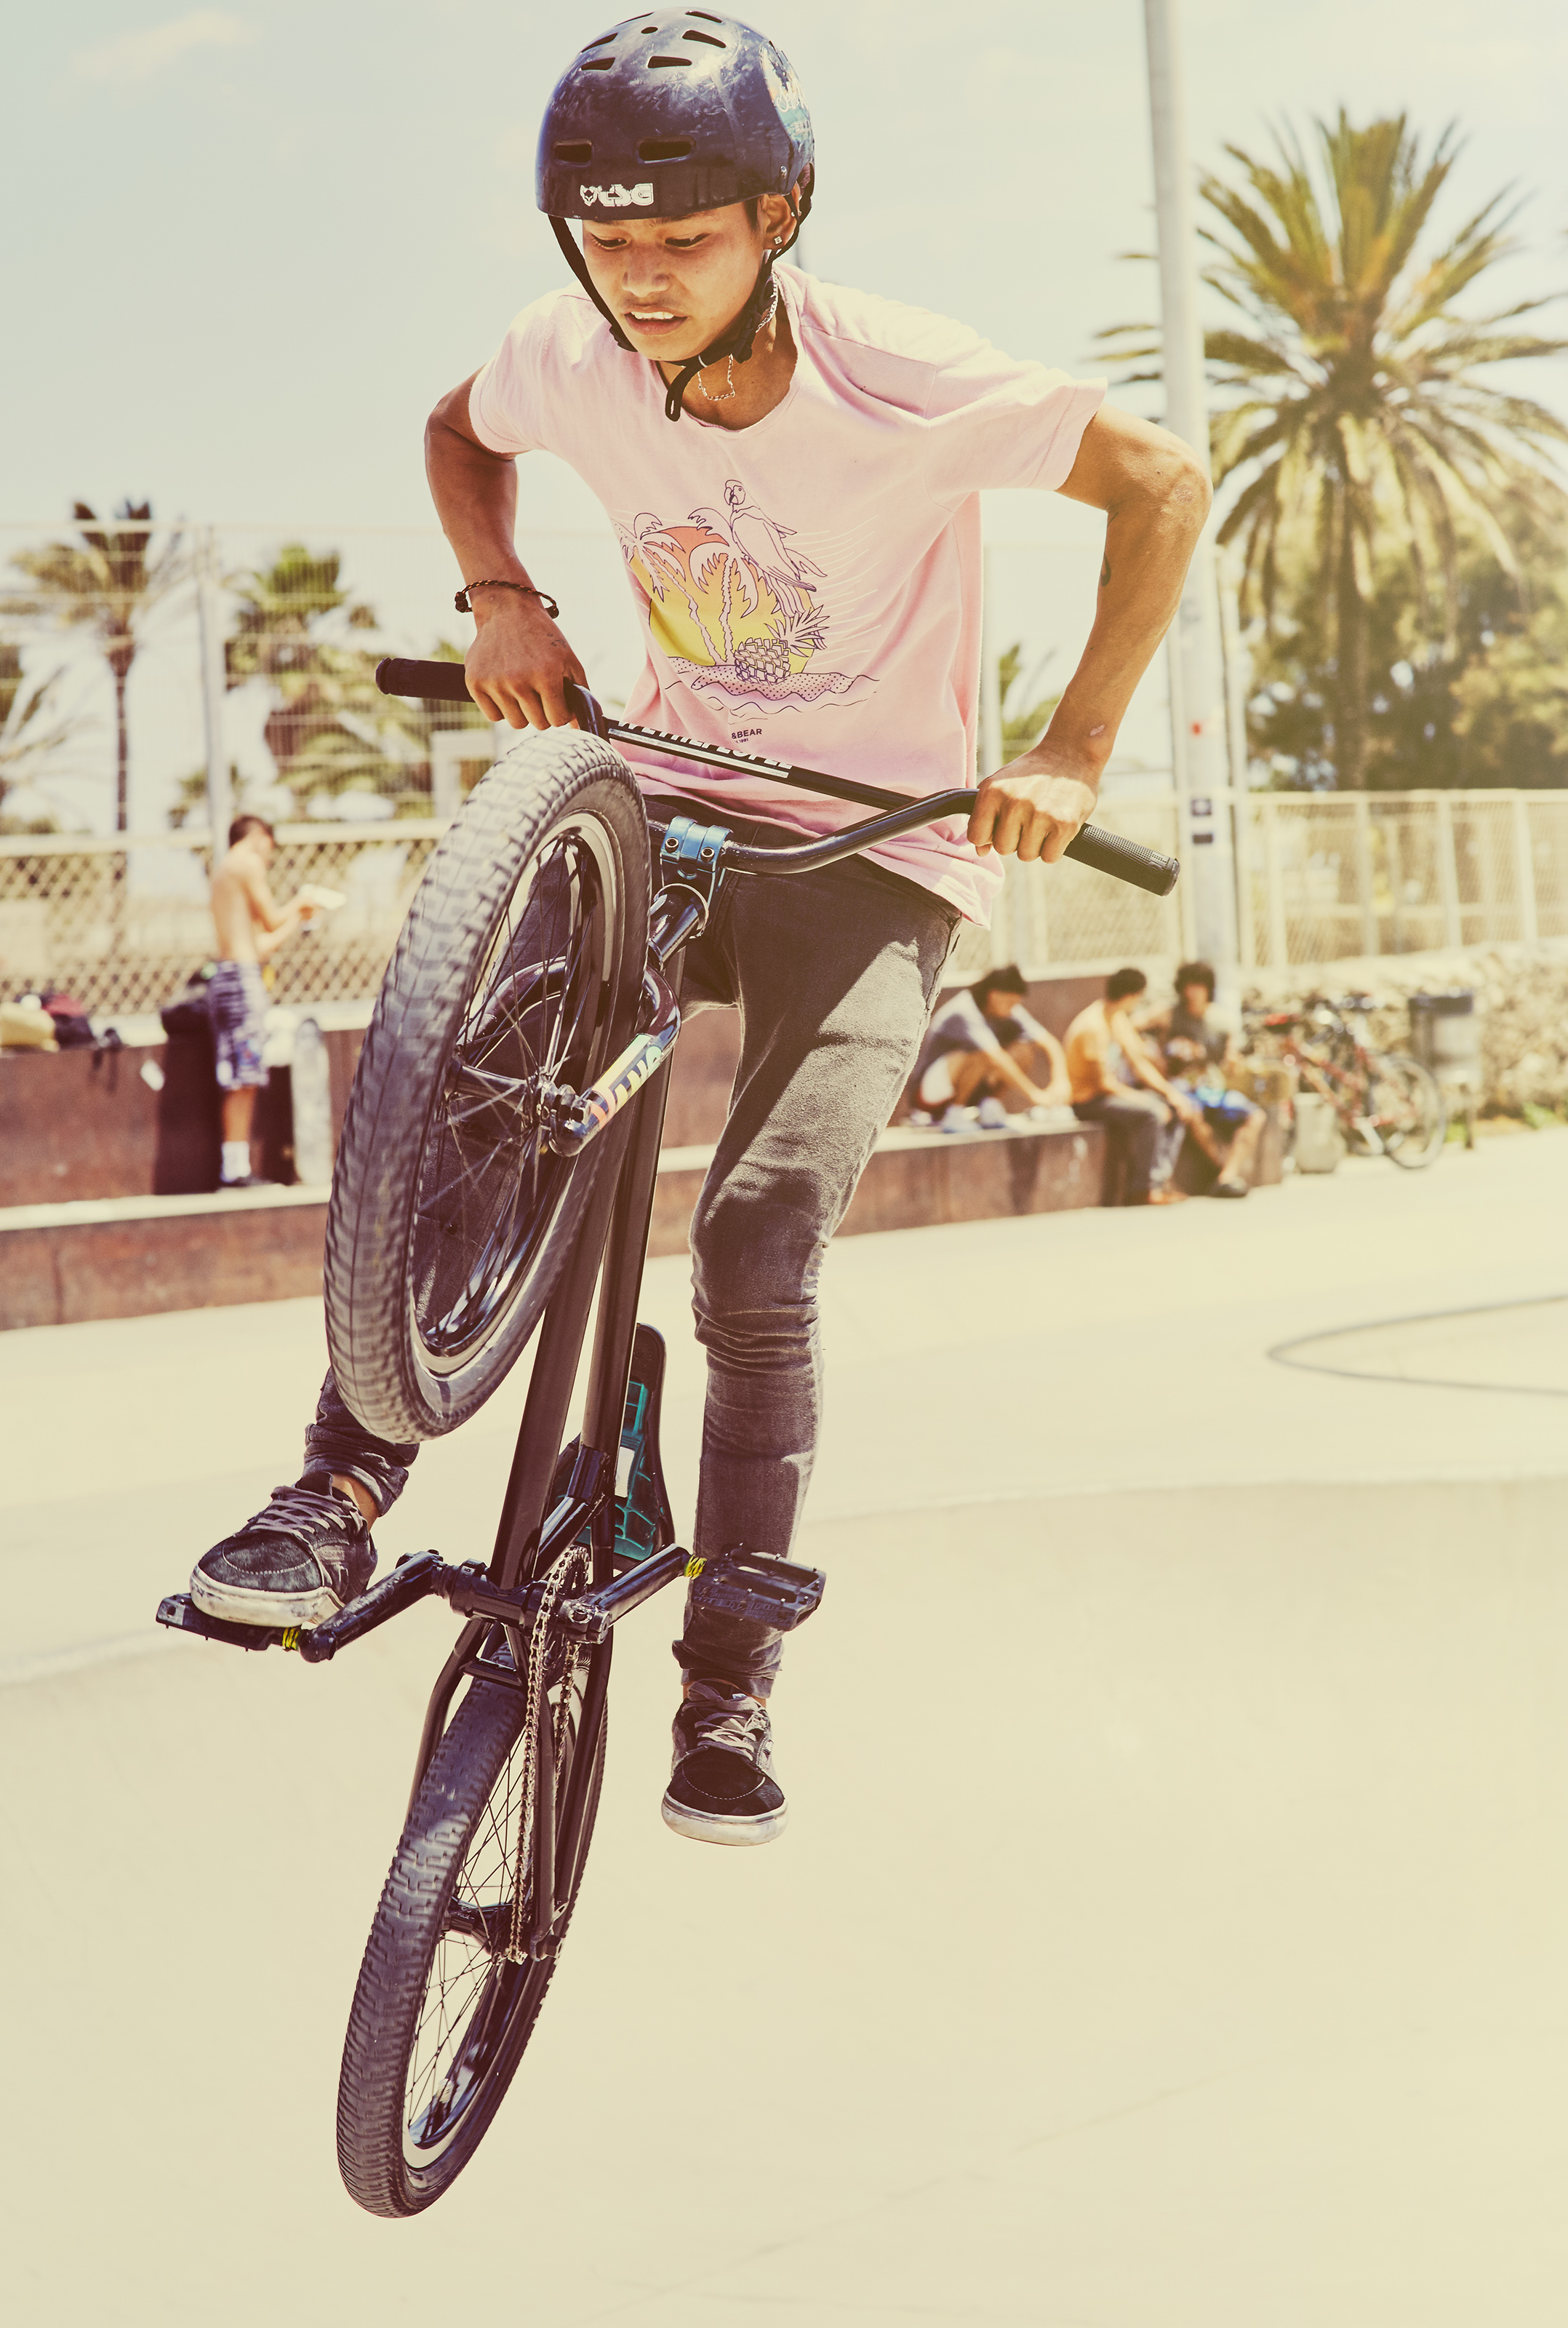 BMX Rider caught in the air